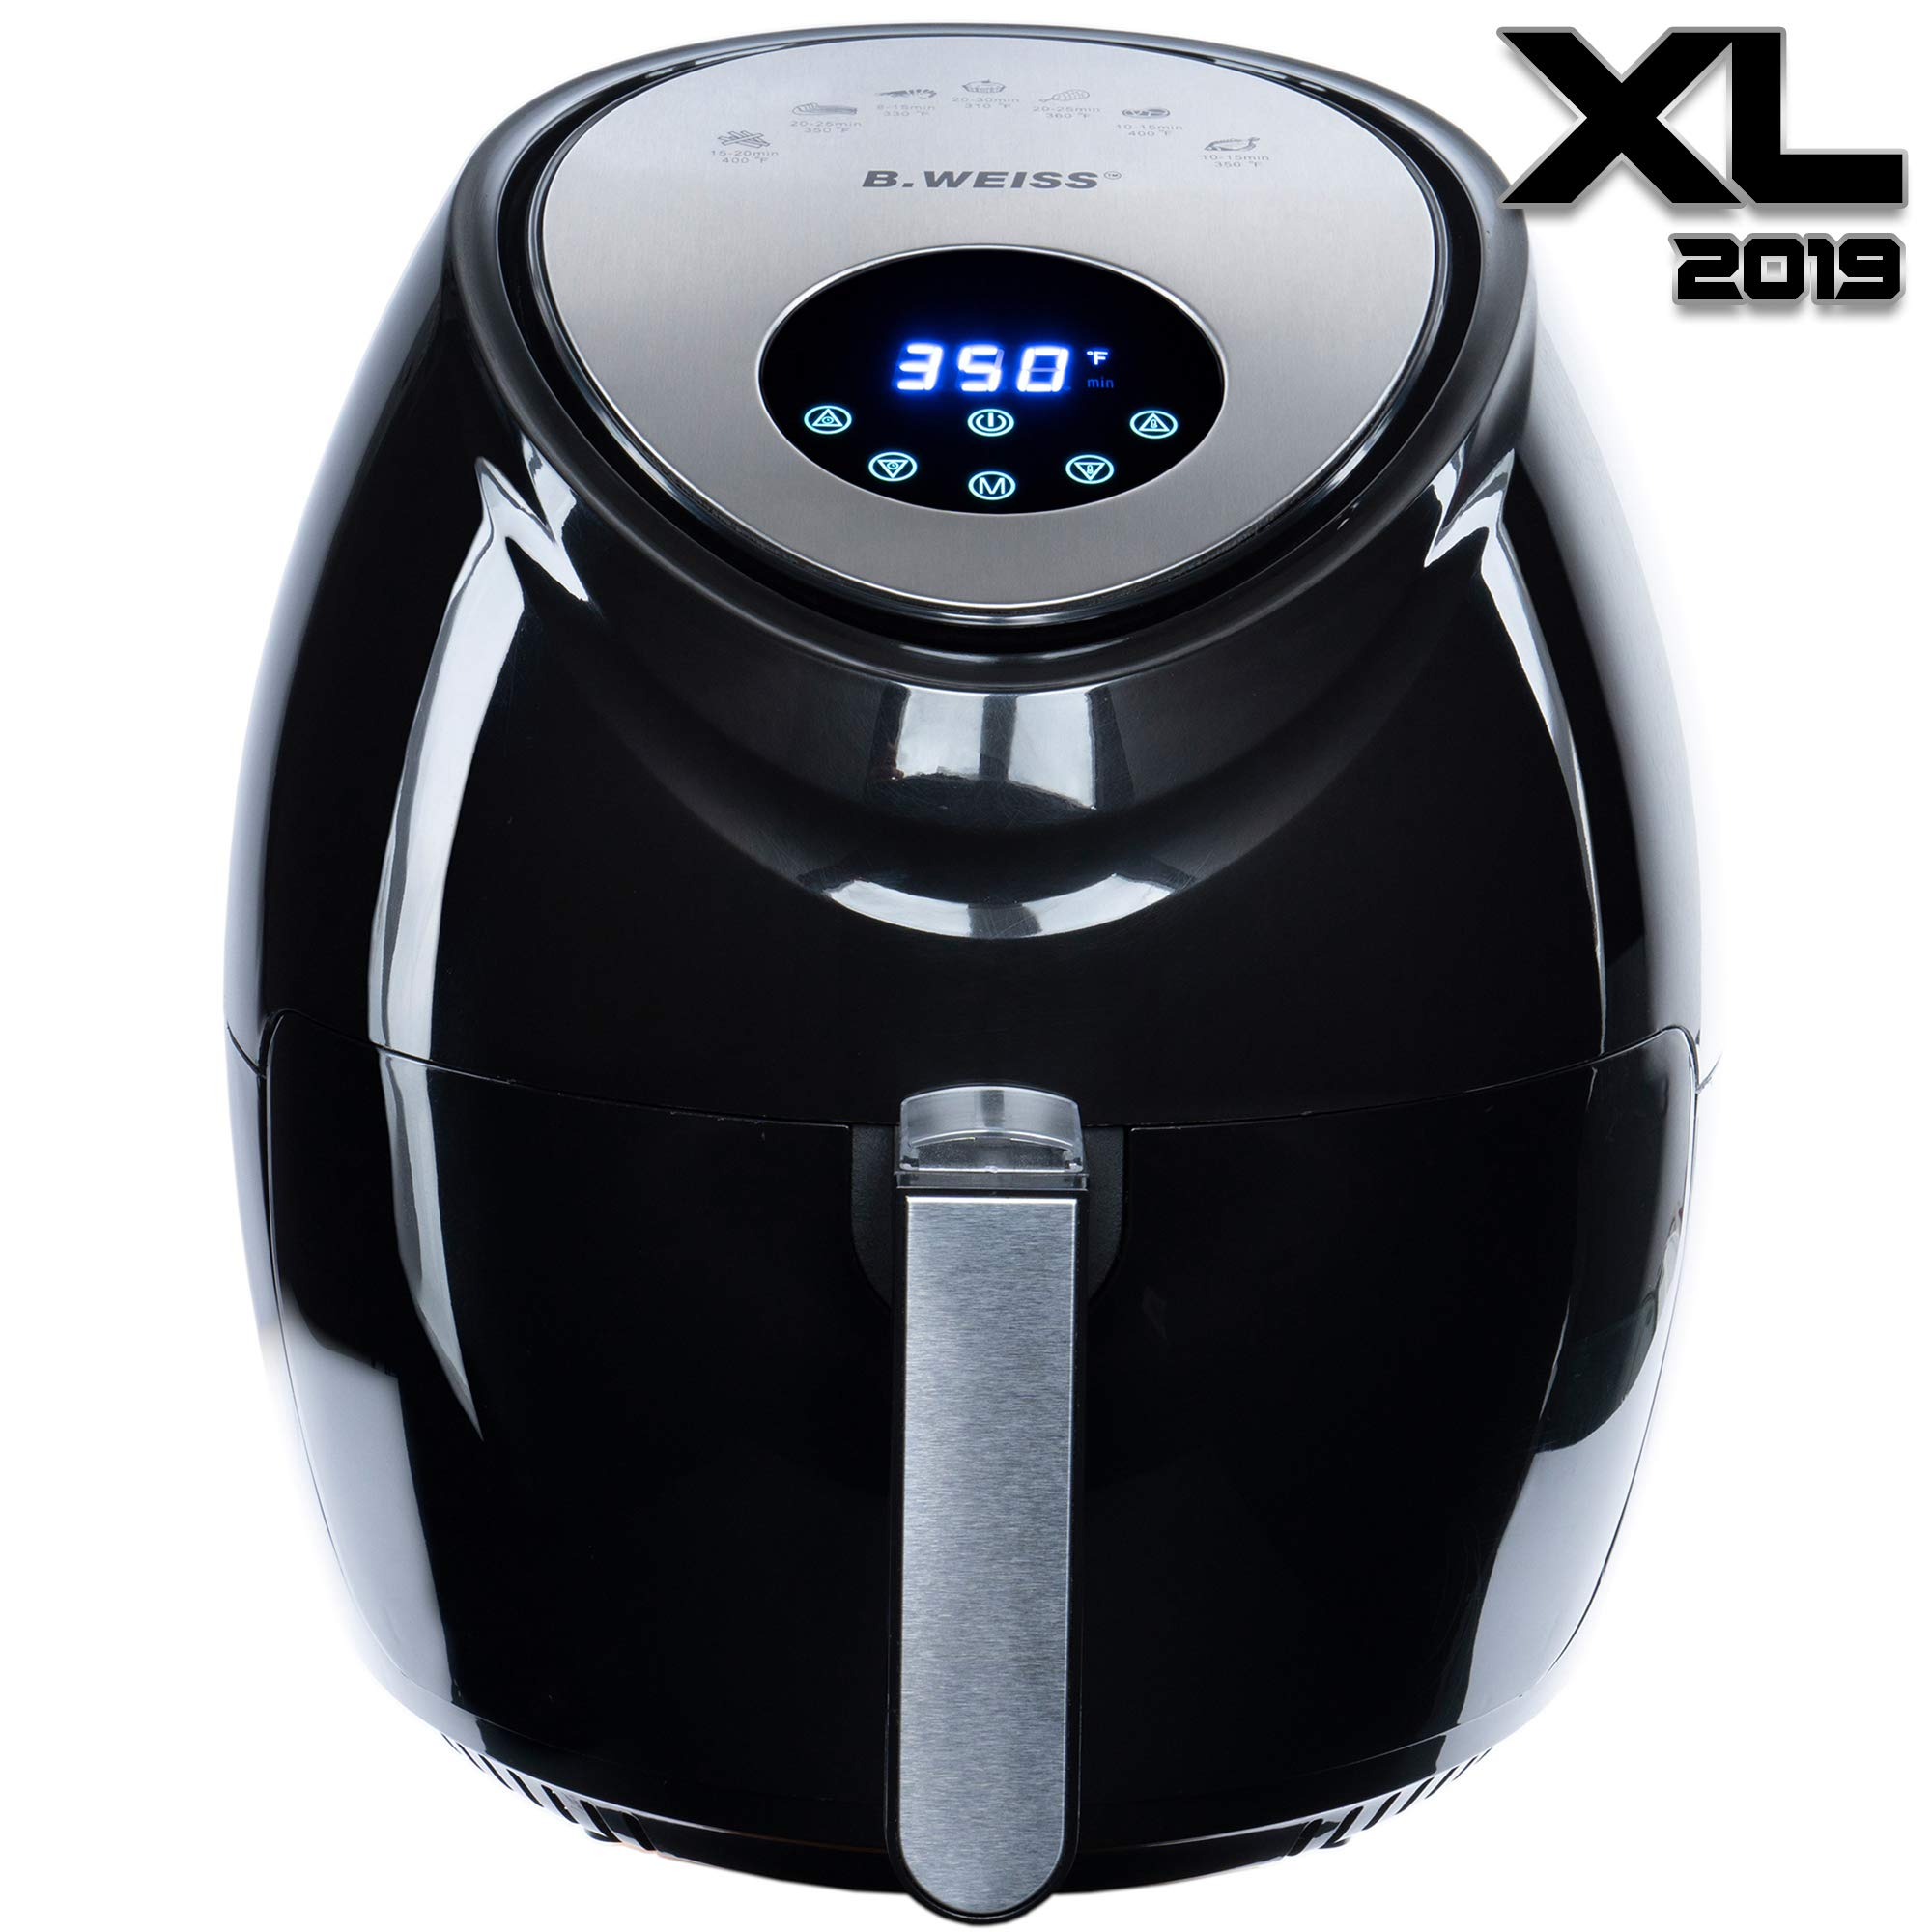 2019 Air Fryer Xl Best 5 5 Qt 8 In 1 By B Weiss